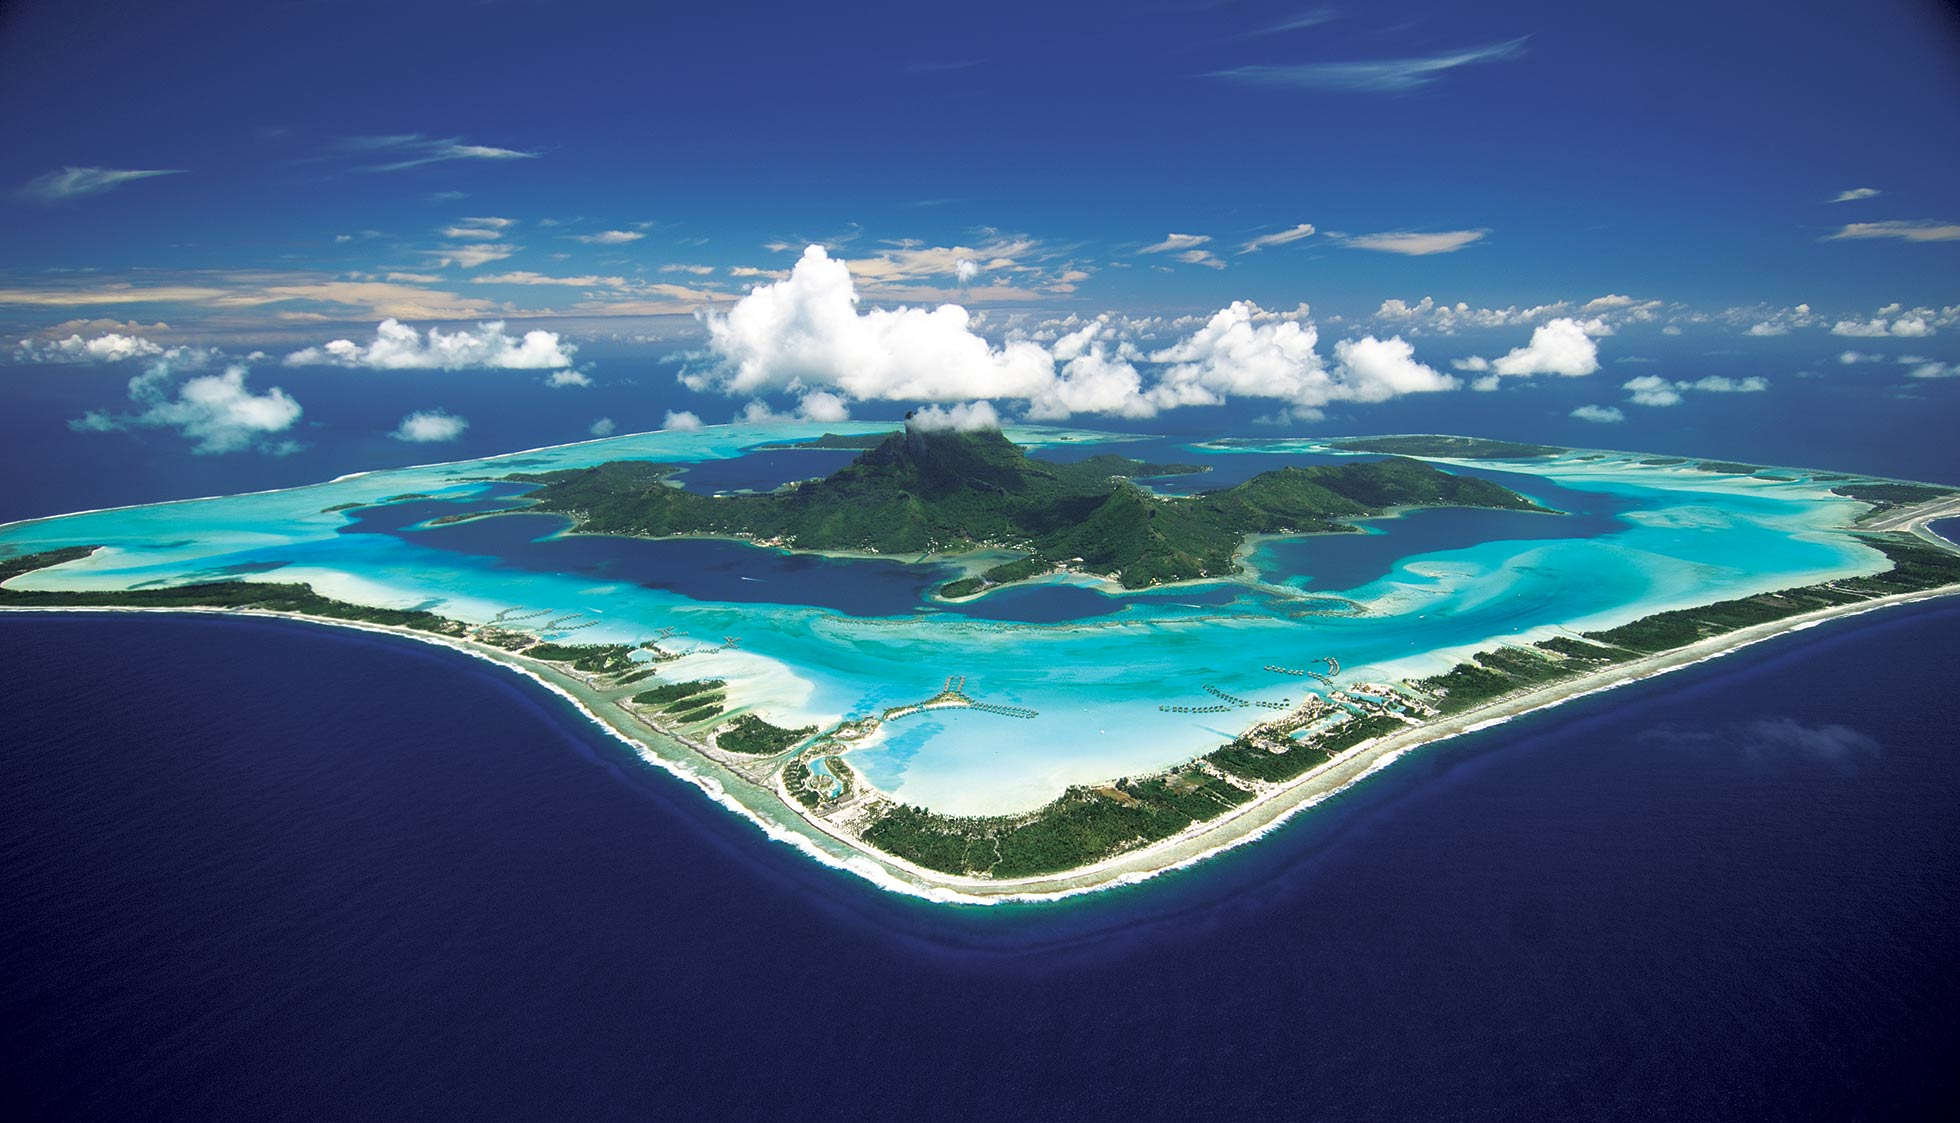 Bora Bora Island - Anchorage And Peak